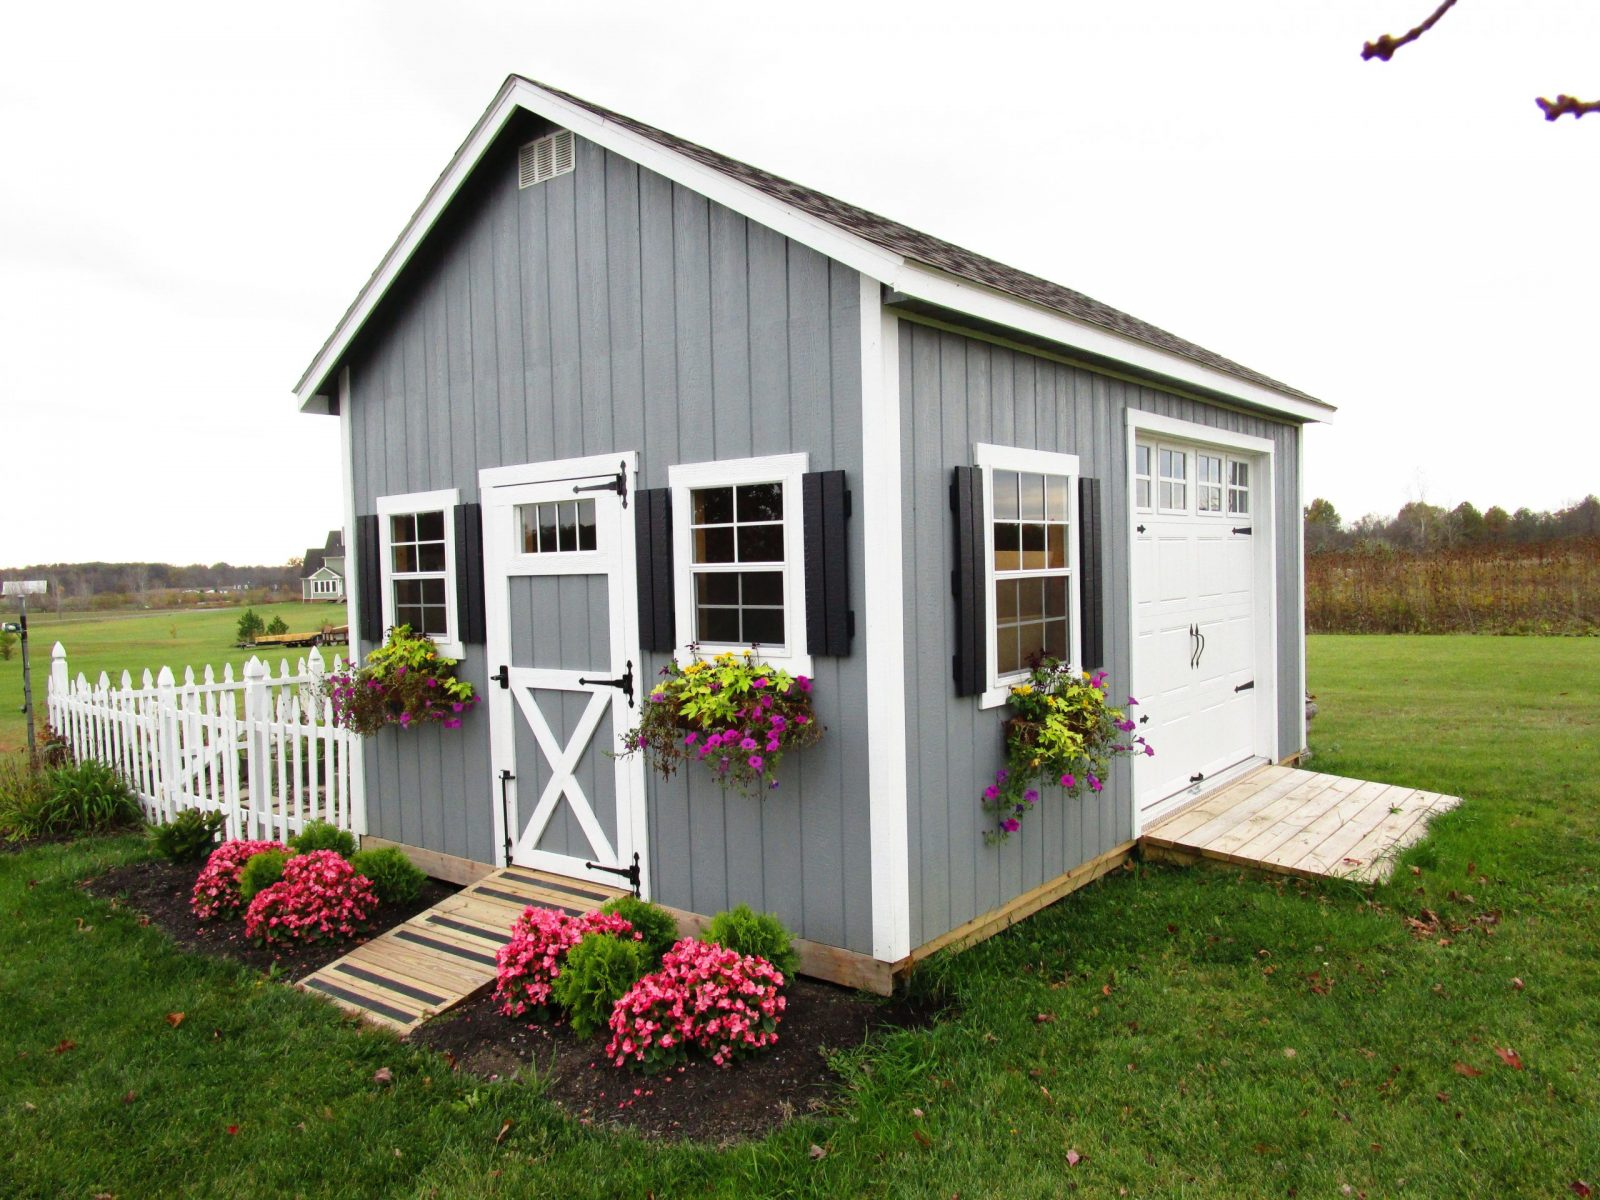 garden shed adds stunning beauty to yard in central ohio